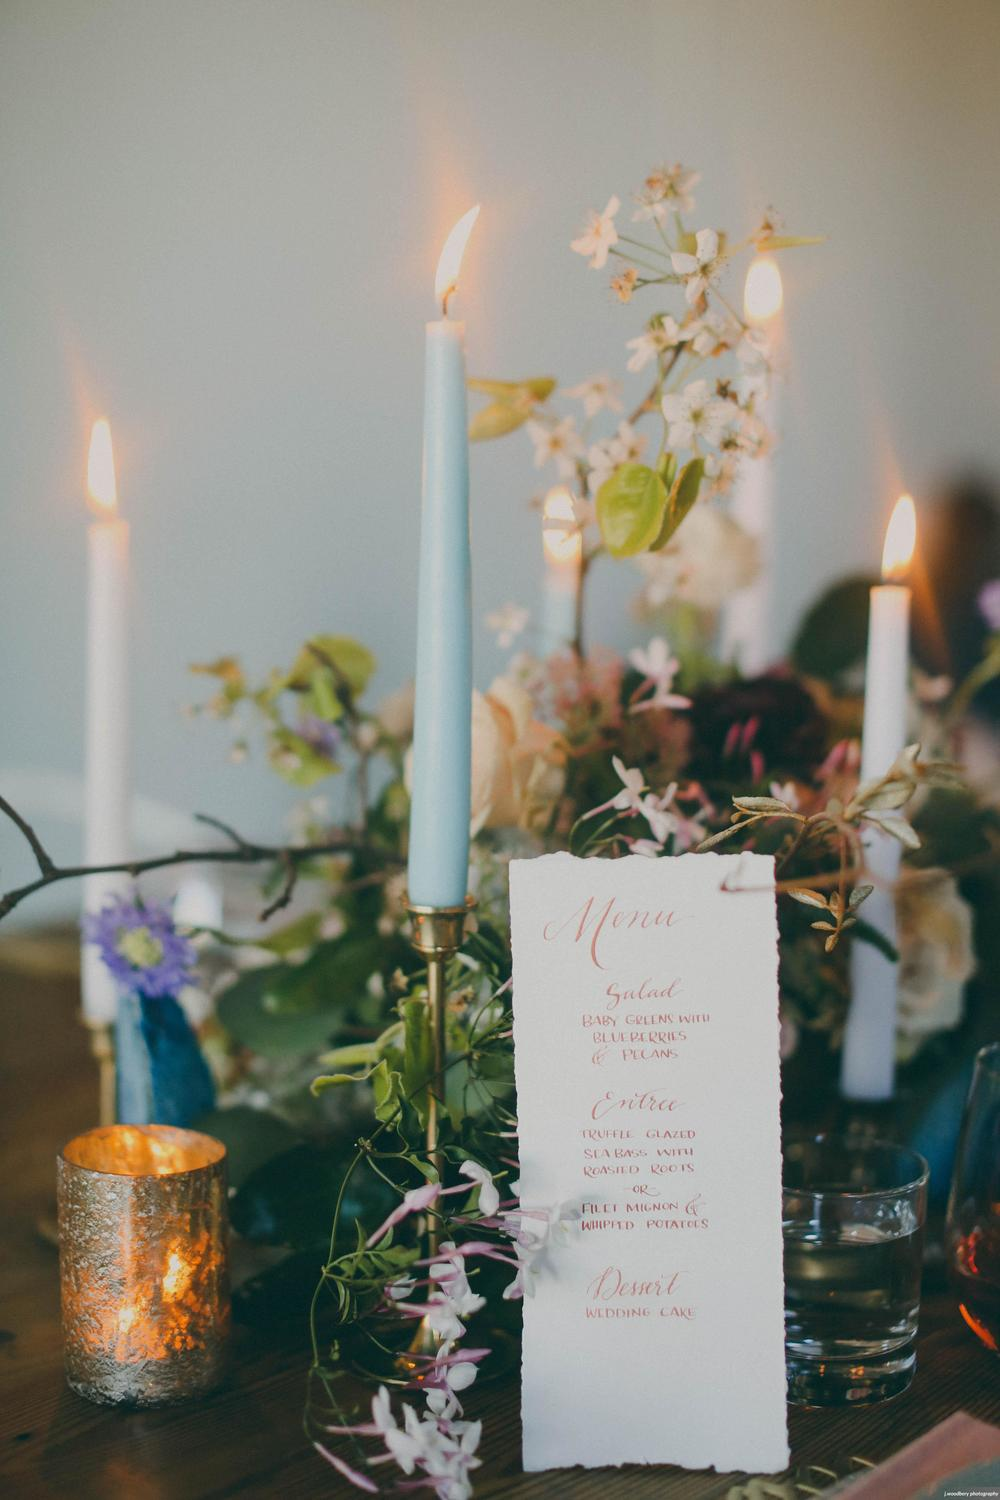 Copper calligraphy and romantic deckled edge for a special dinner menu - photography by Jennifer Woodbery Photography